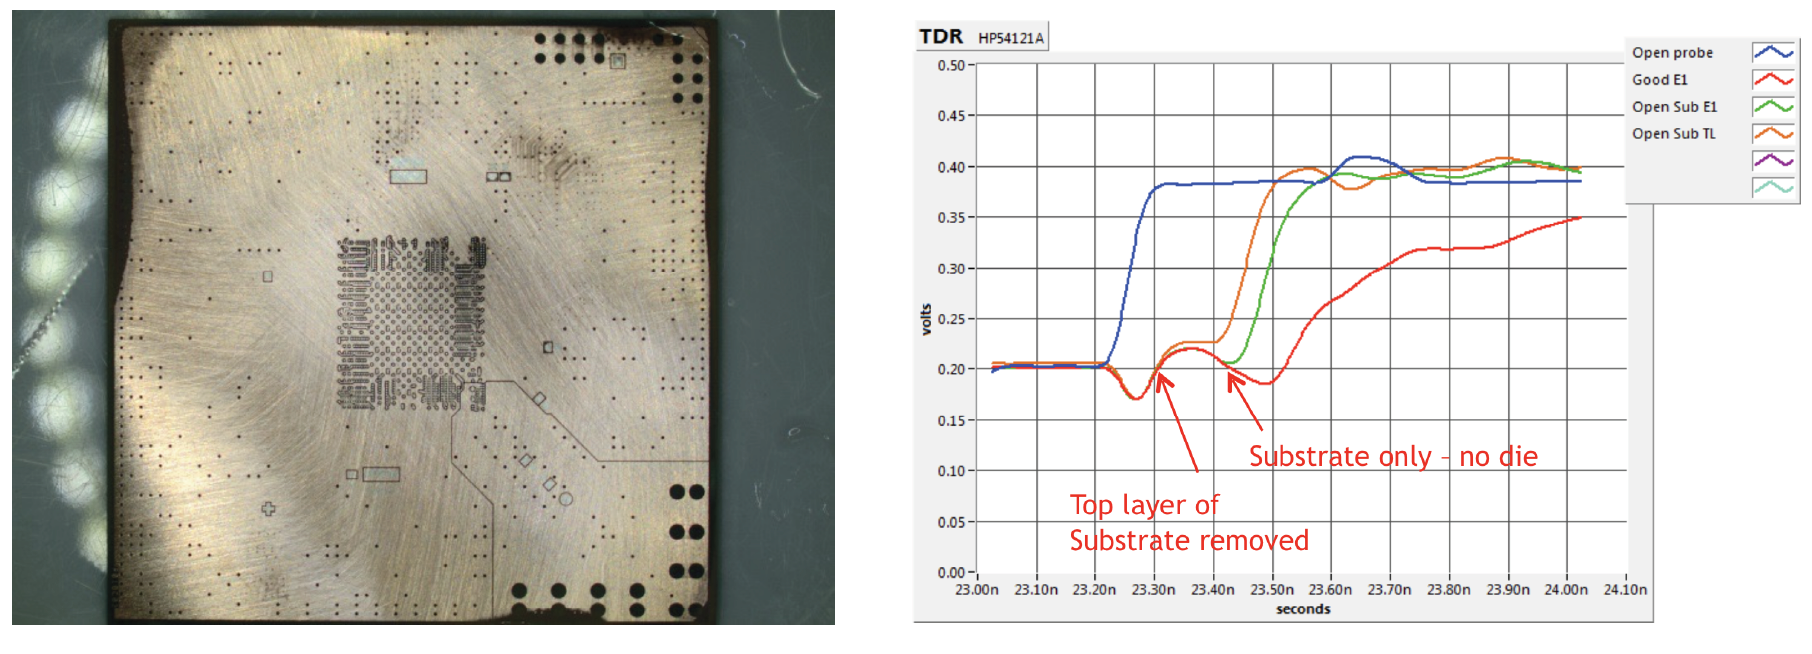 Time Domain Reflectometry (TDR) Top layer of substrate removed